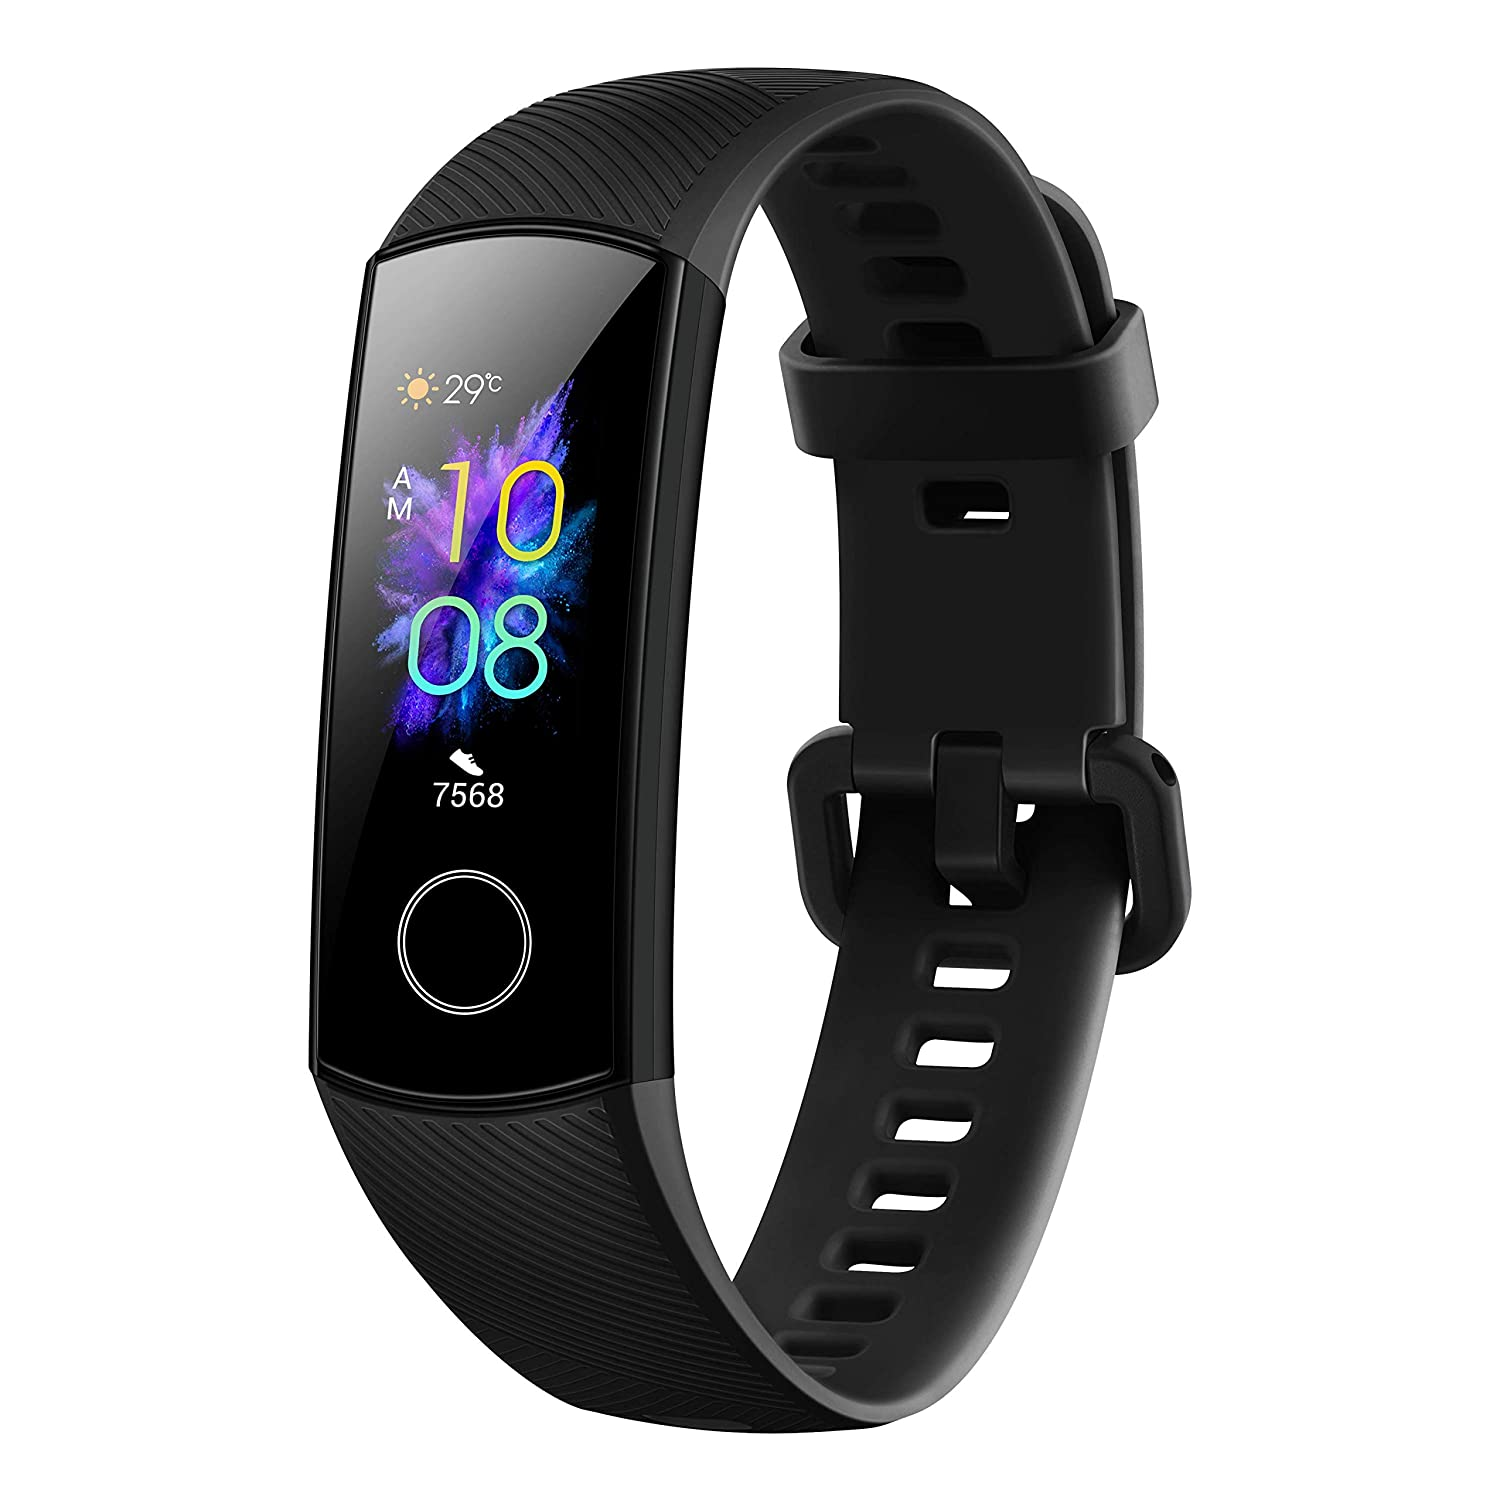 Best Fitness Band for Gym in India 2021